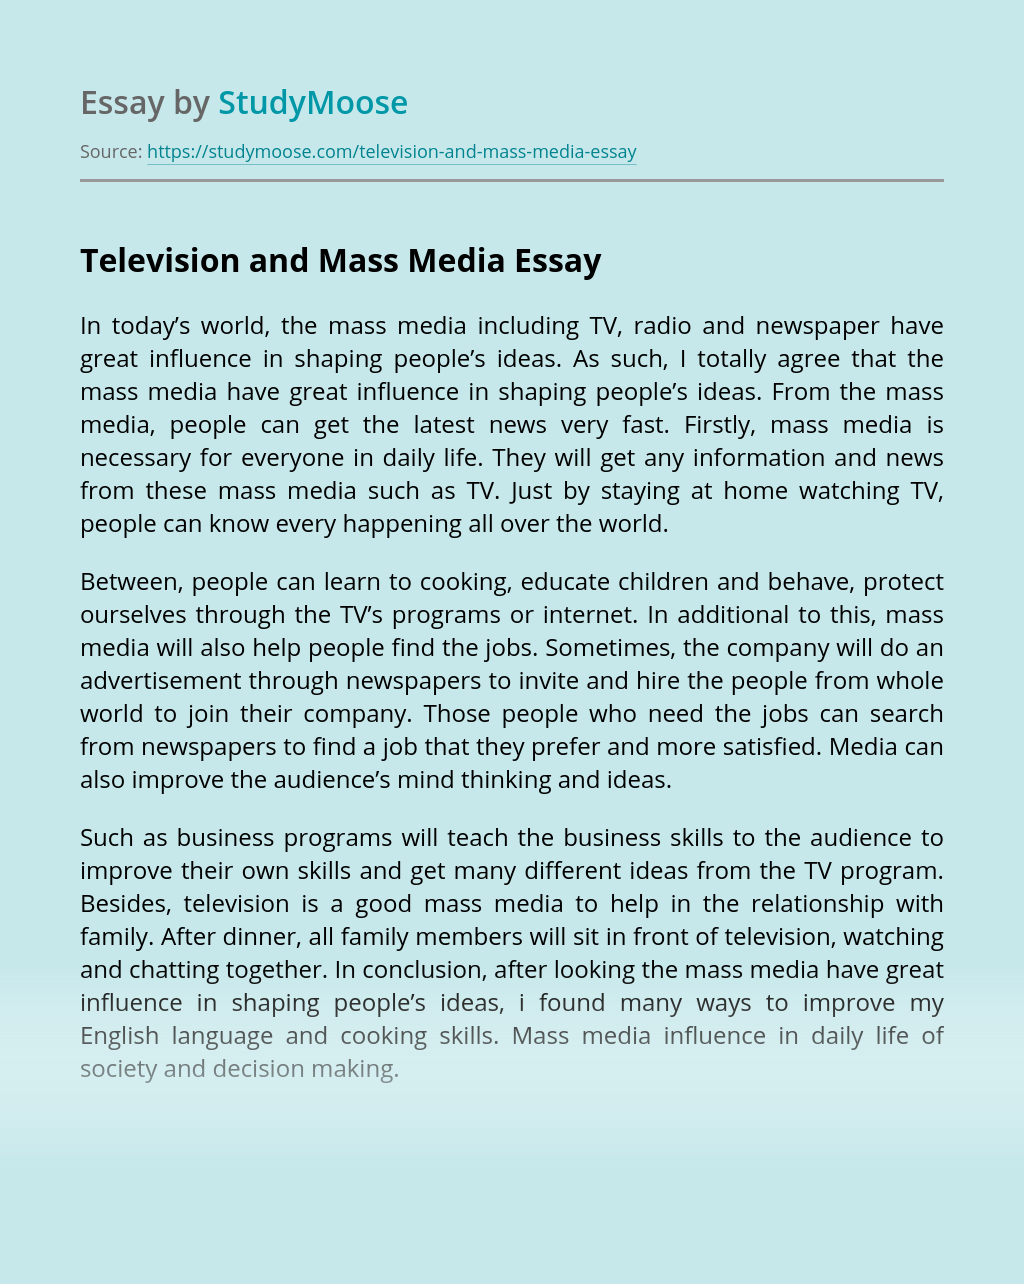 essay on role of mass media in education